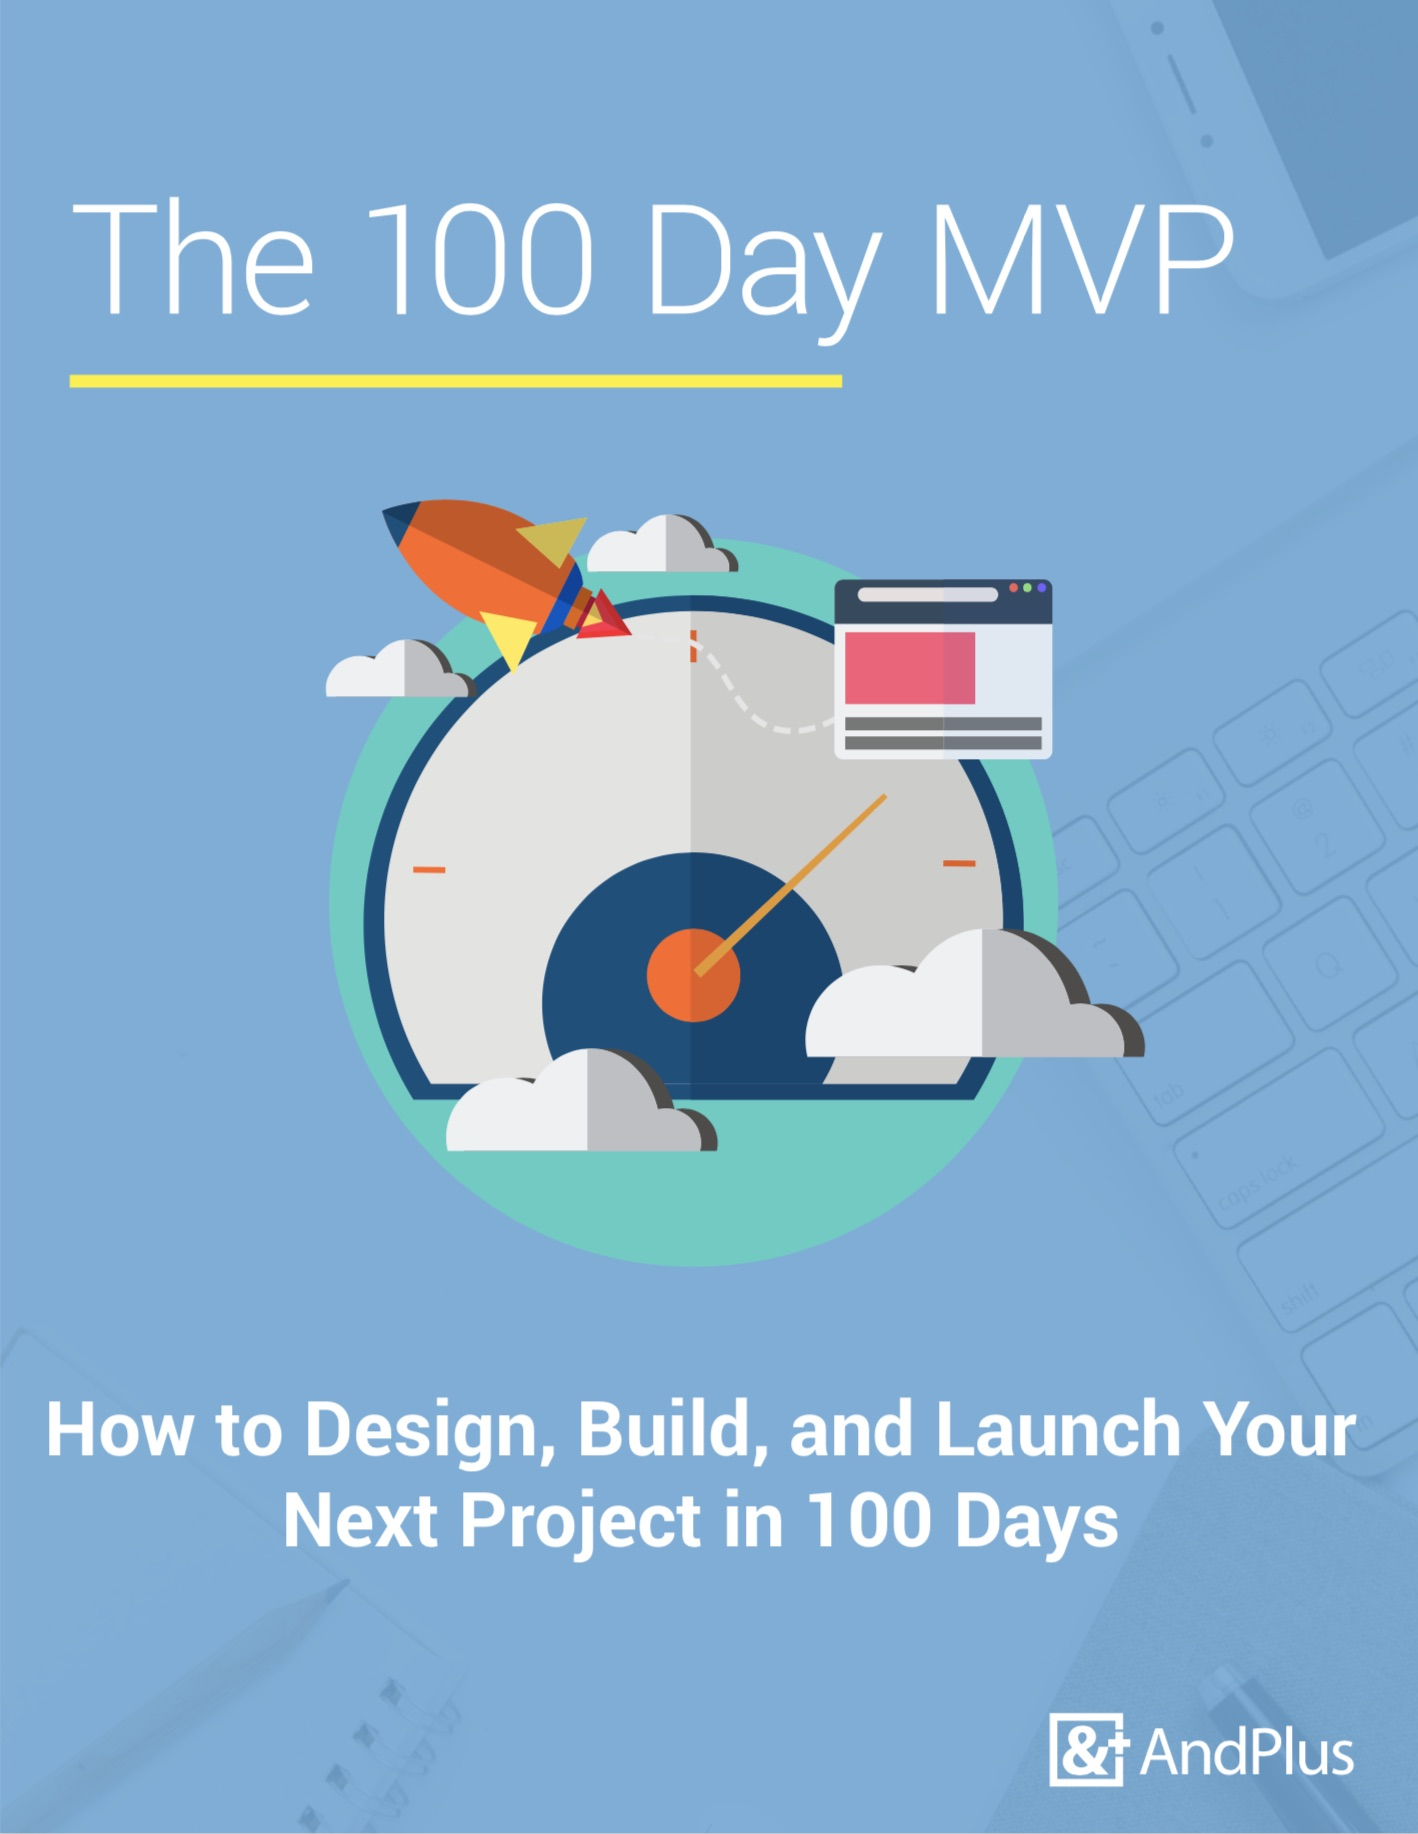 AndPlus designs, engineers and launches your MVP in 100 Days. From web dashboards to mobile apps, our team is the best in Boston.